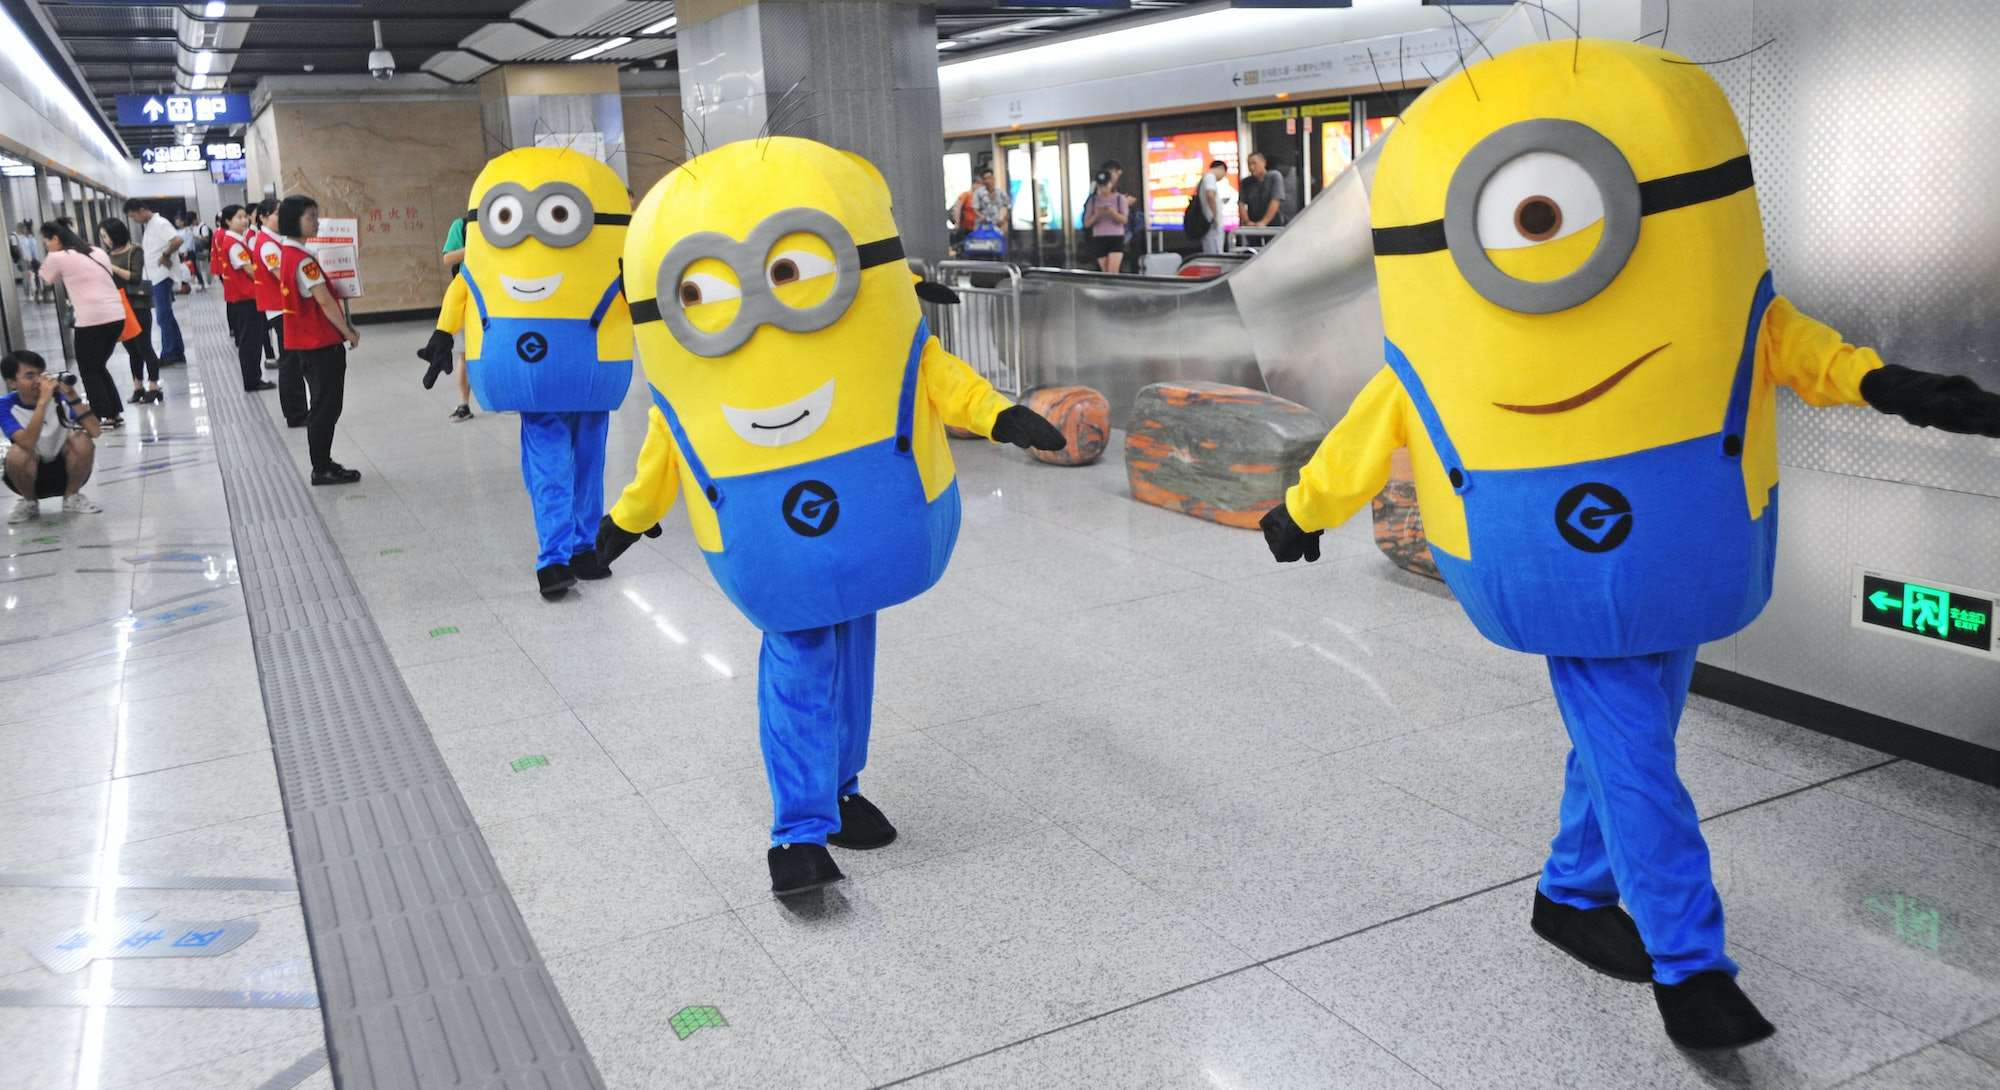 WUHAN, CHINA - AUGUST 13: A volunteer dressed as Minions character greets members of the public at t...